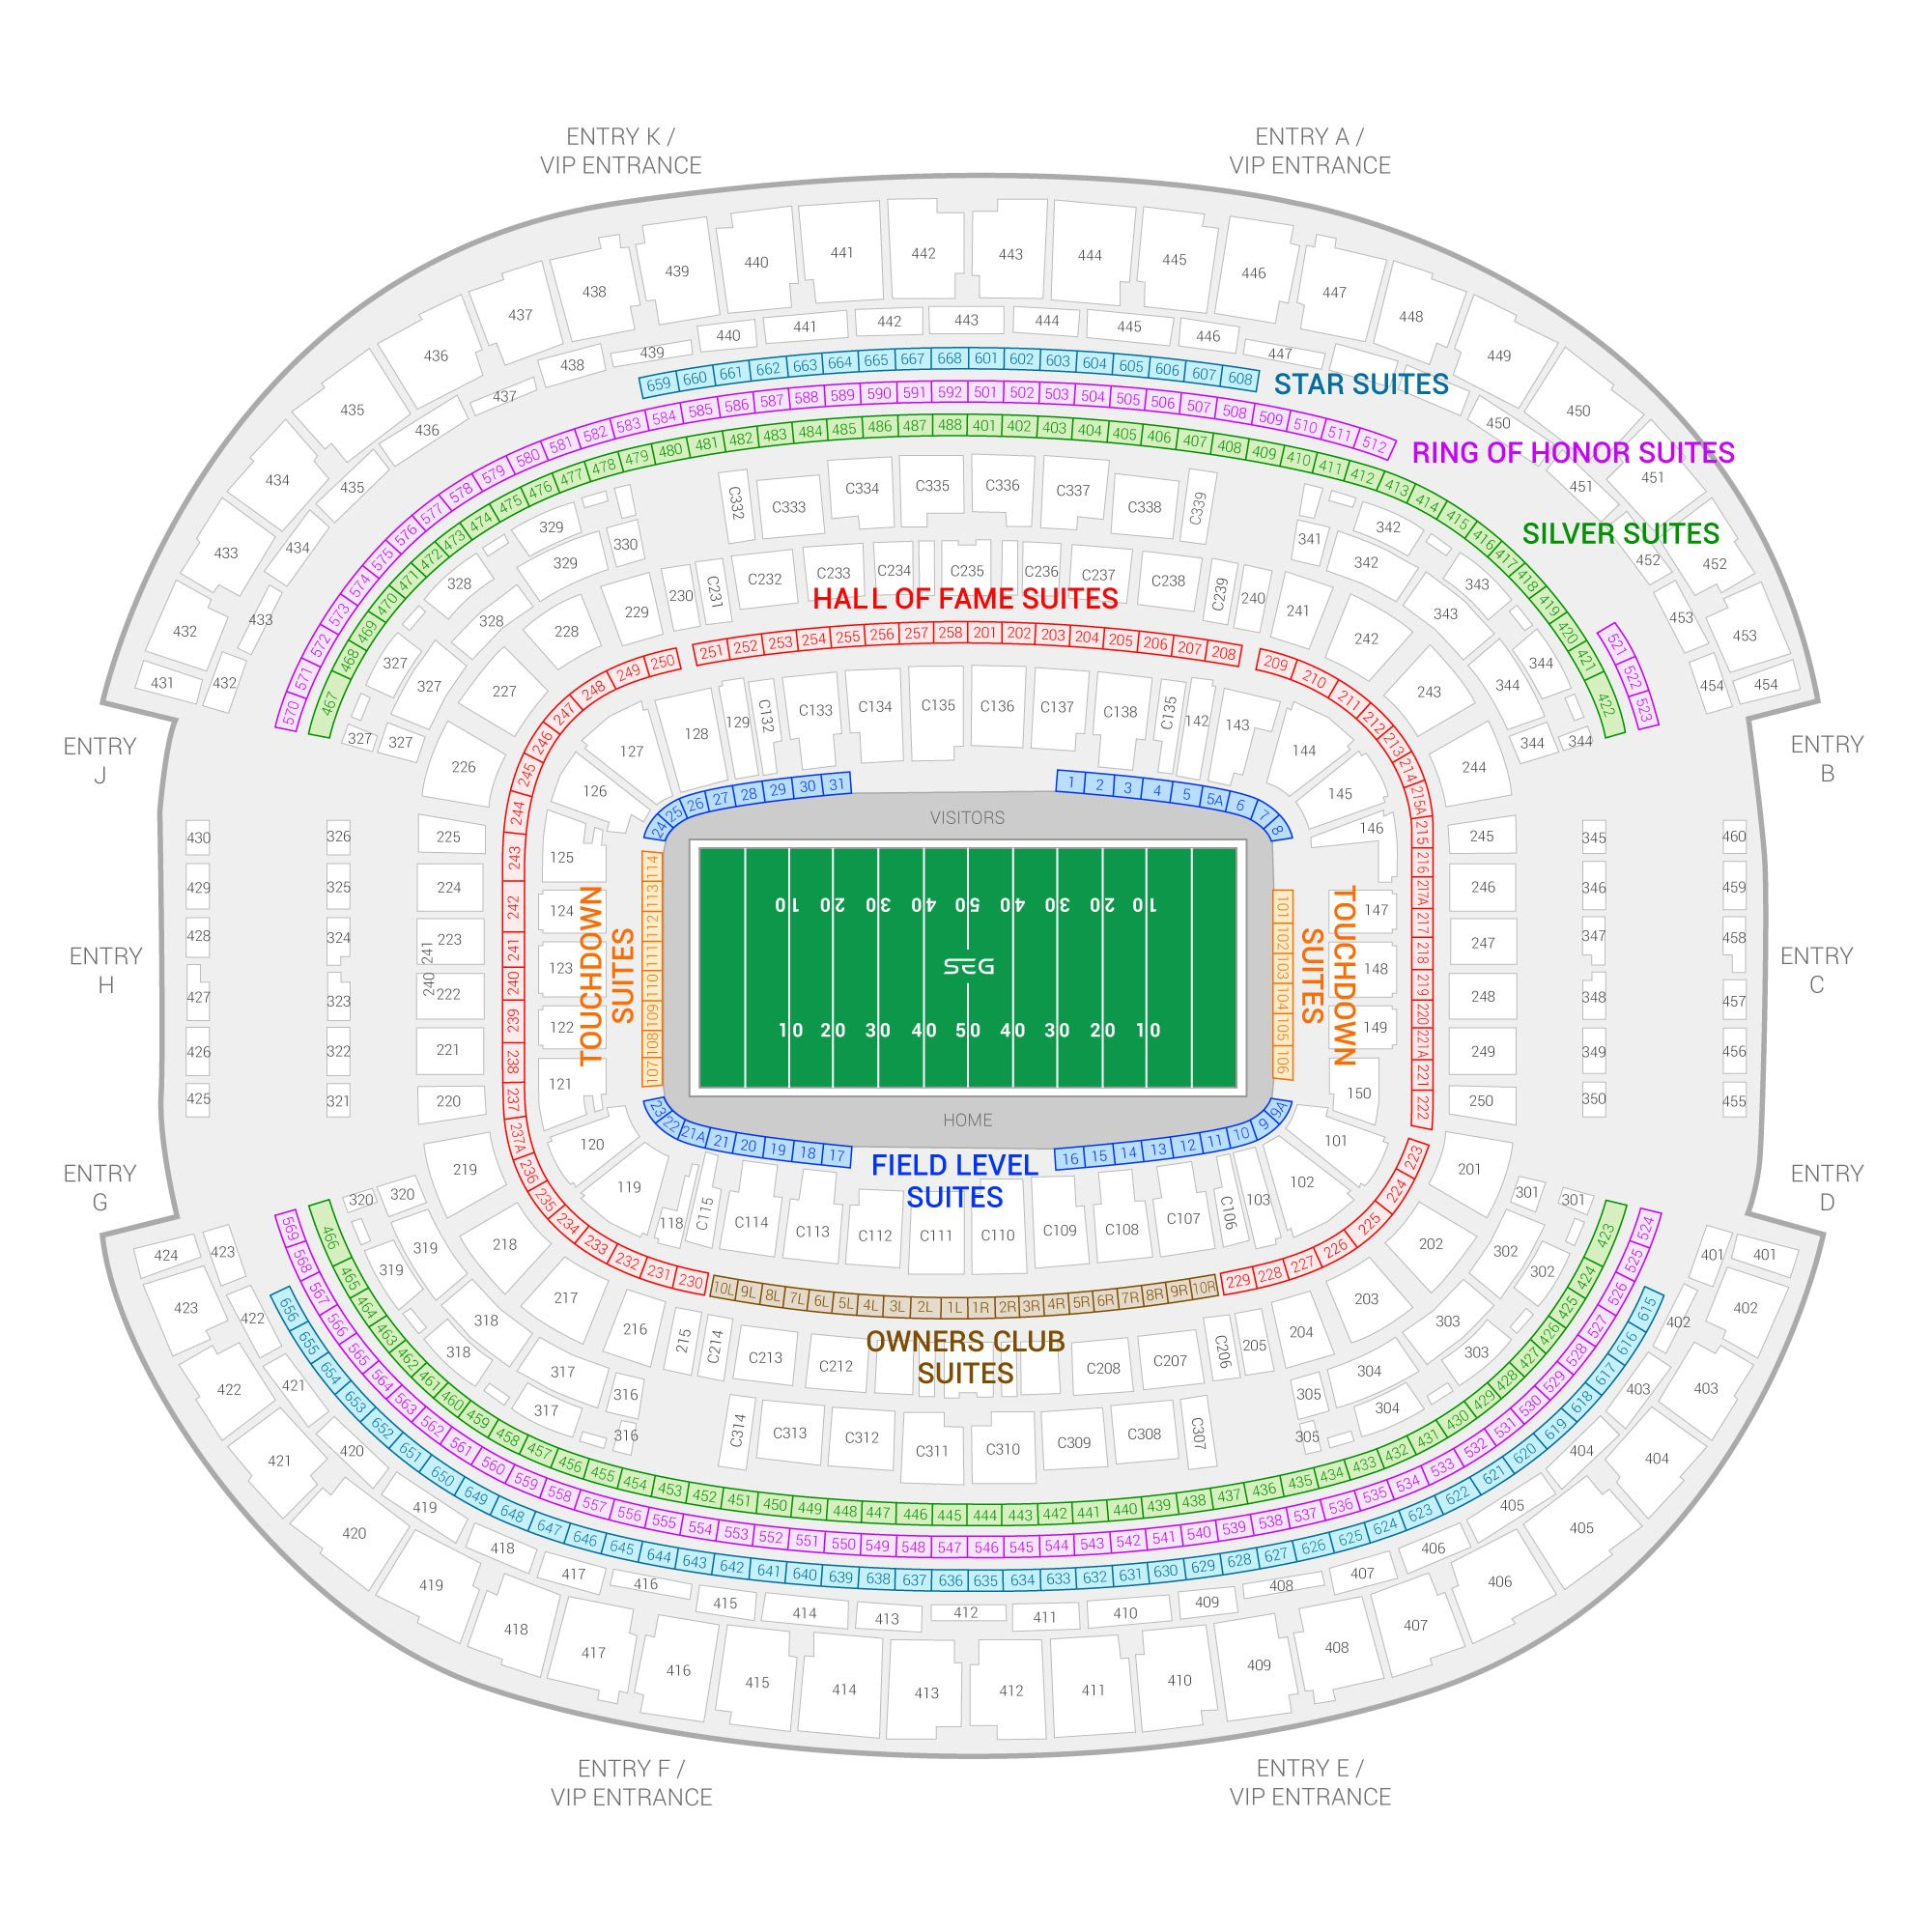 AT&T Stadium / Cotton Bowl Classic Suite Map and Seating Chart